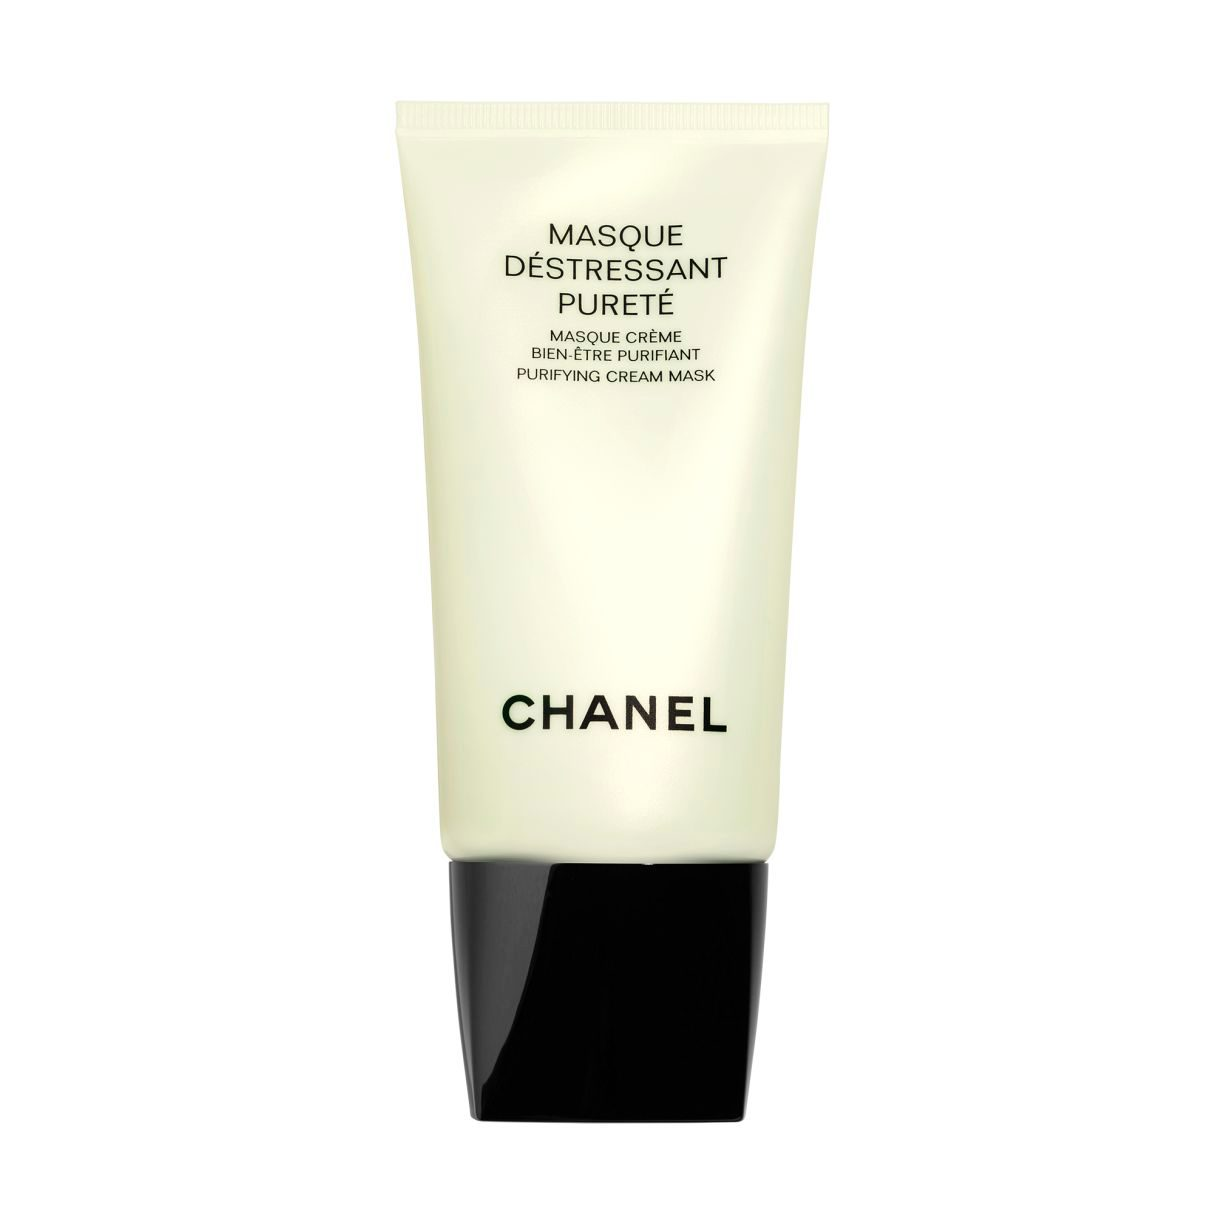 MASQUE DÉSTRESSANT PURETÉ PURIFYING CREAM MASK 75ml